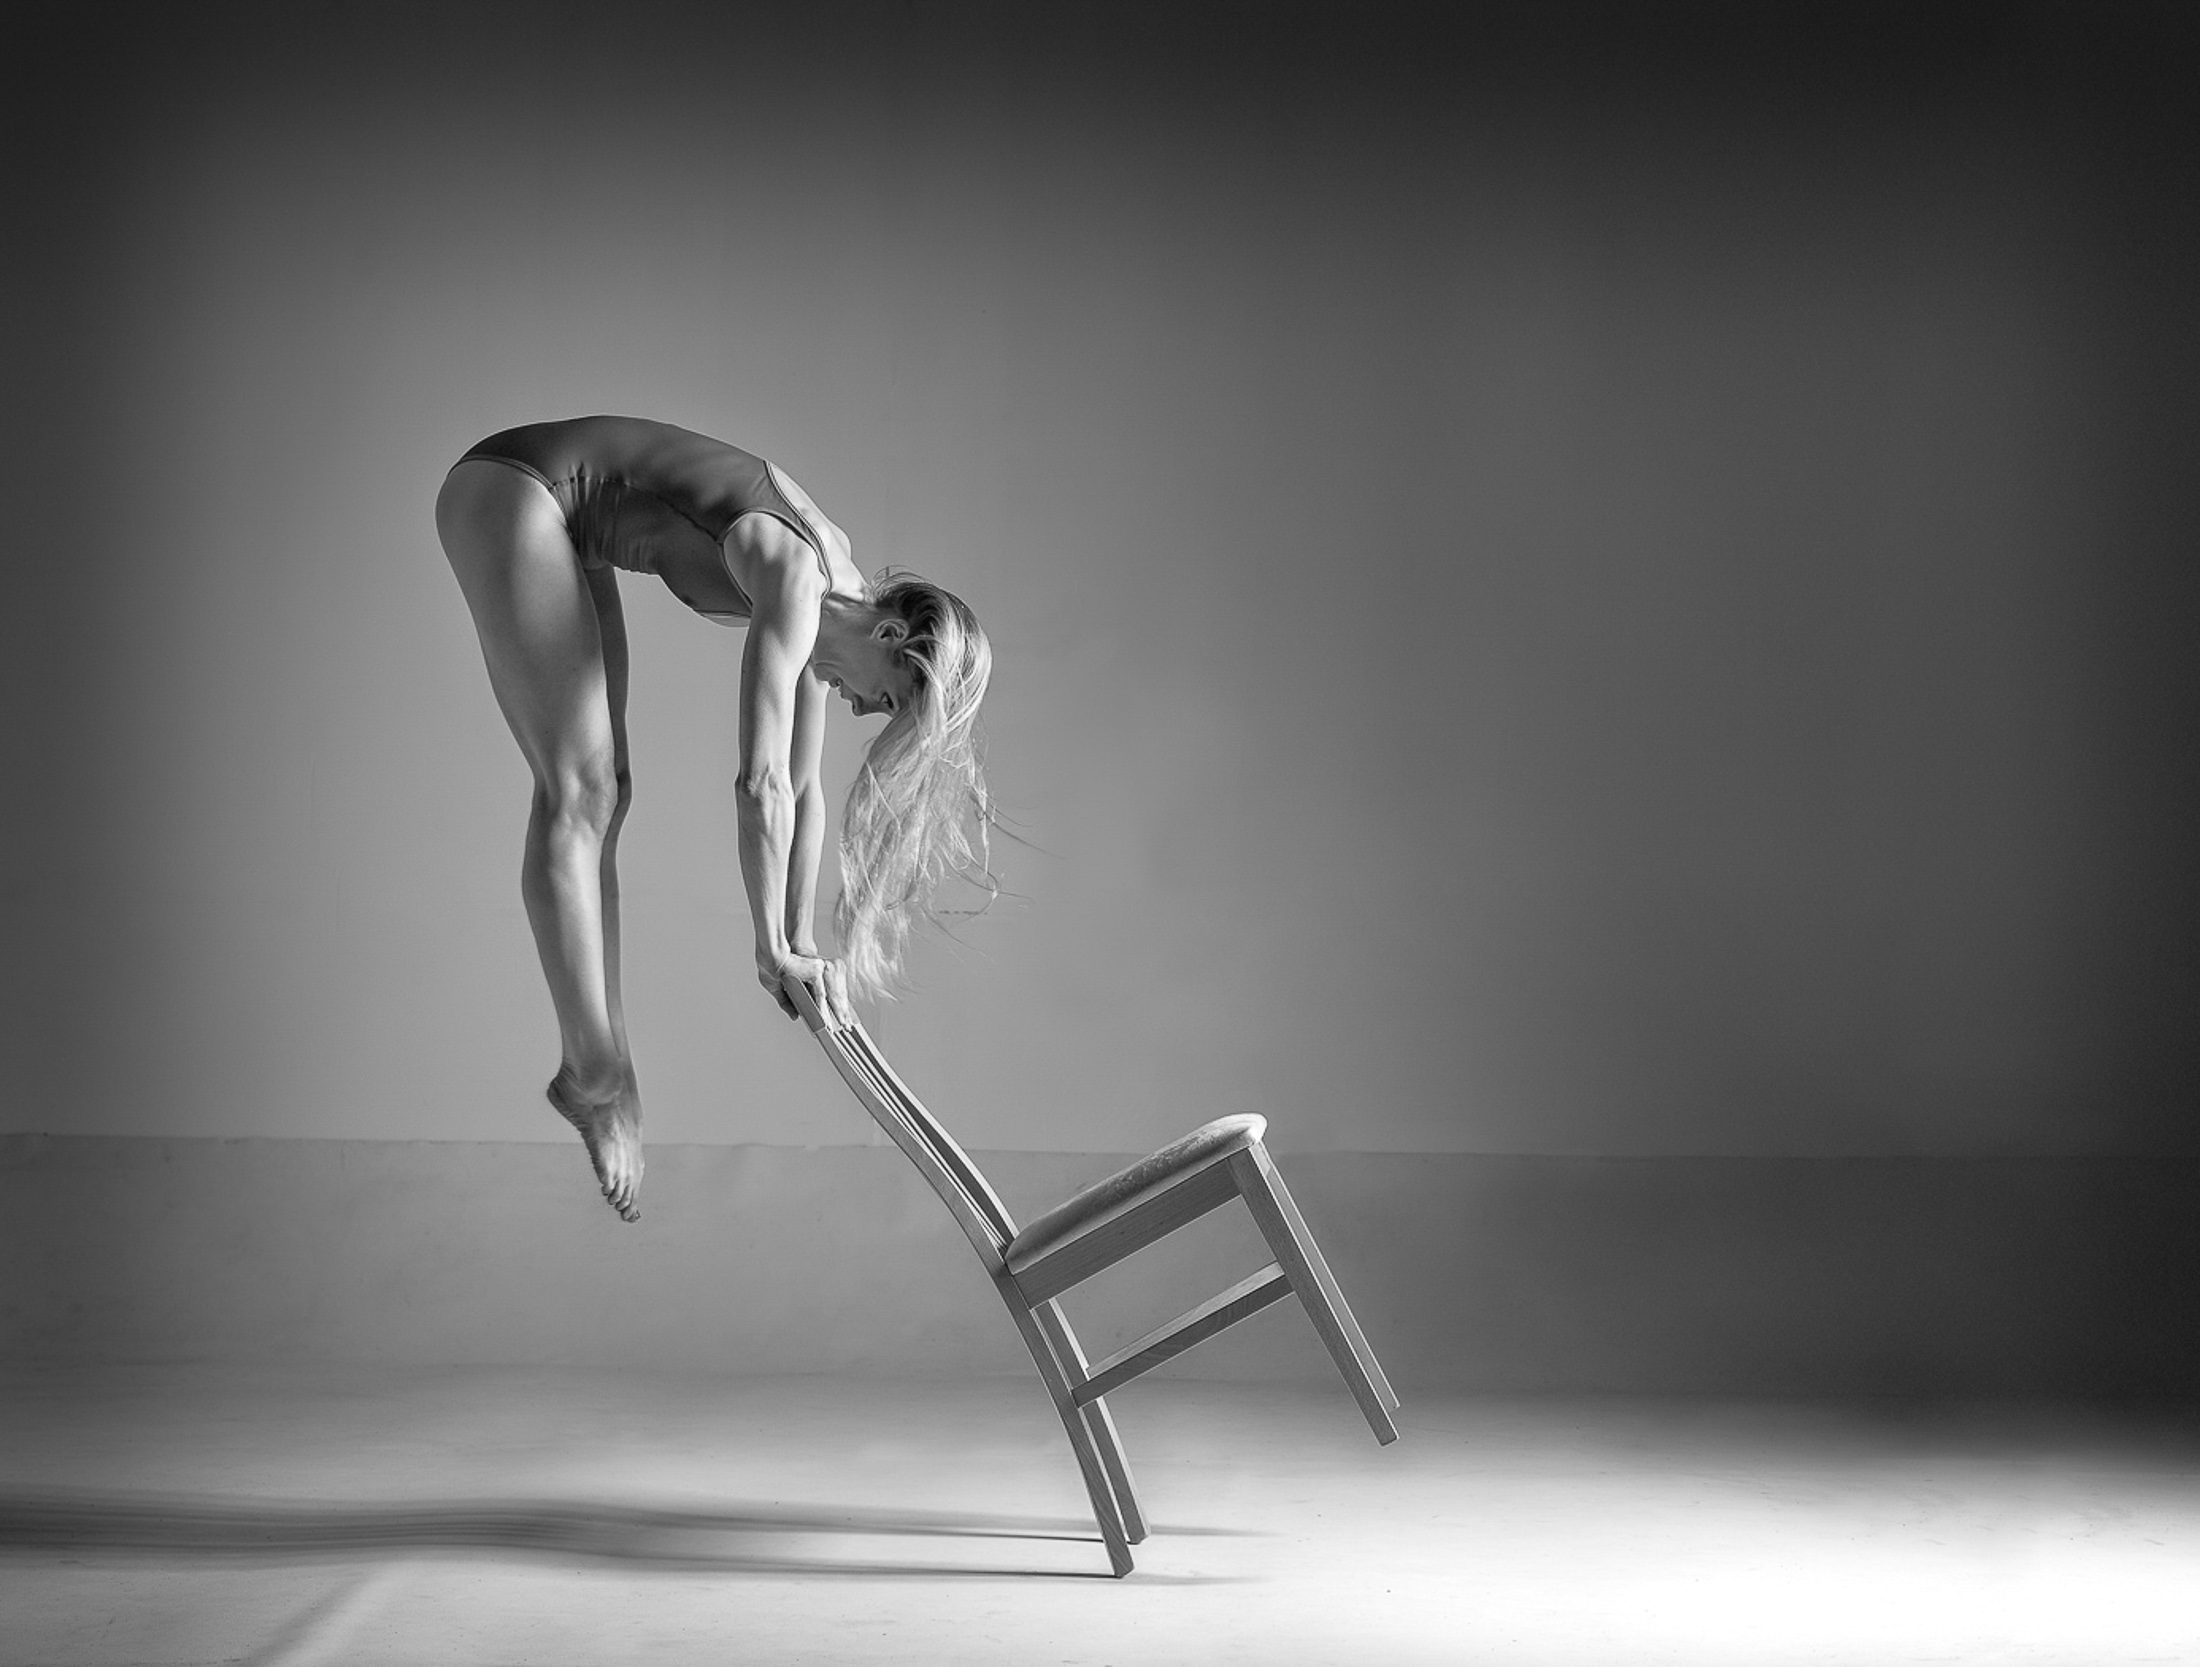 perfecting the art of chair stands